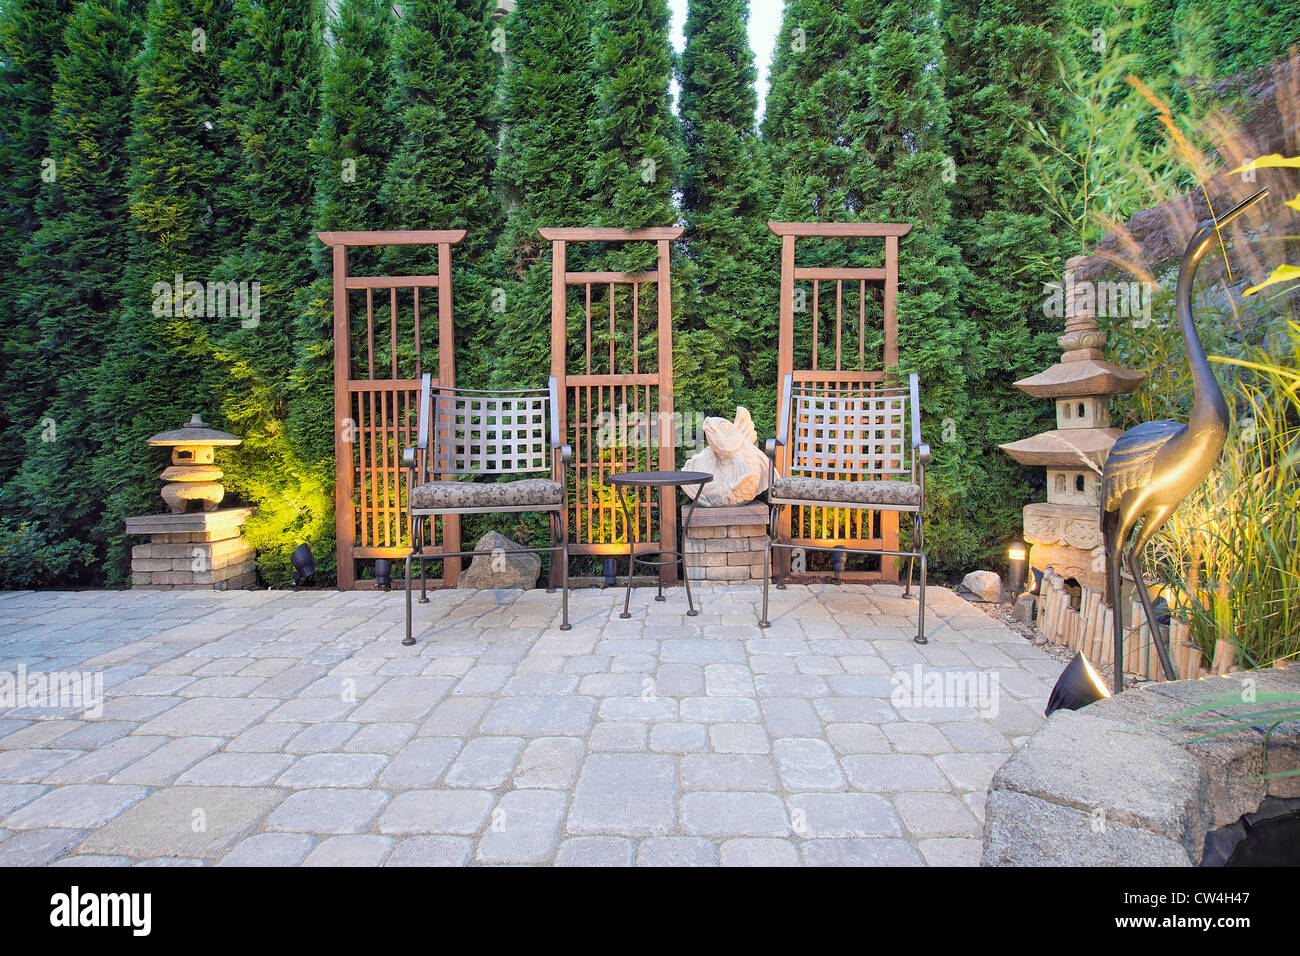 Garden Paver Patio With Trellis Japanese Stone Lantern Pagoda And Bronze  Crane Sculpture